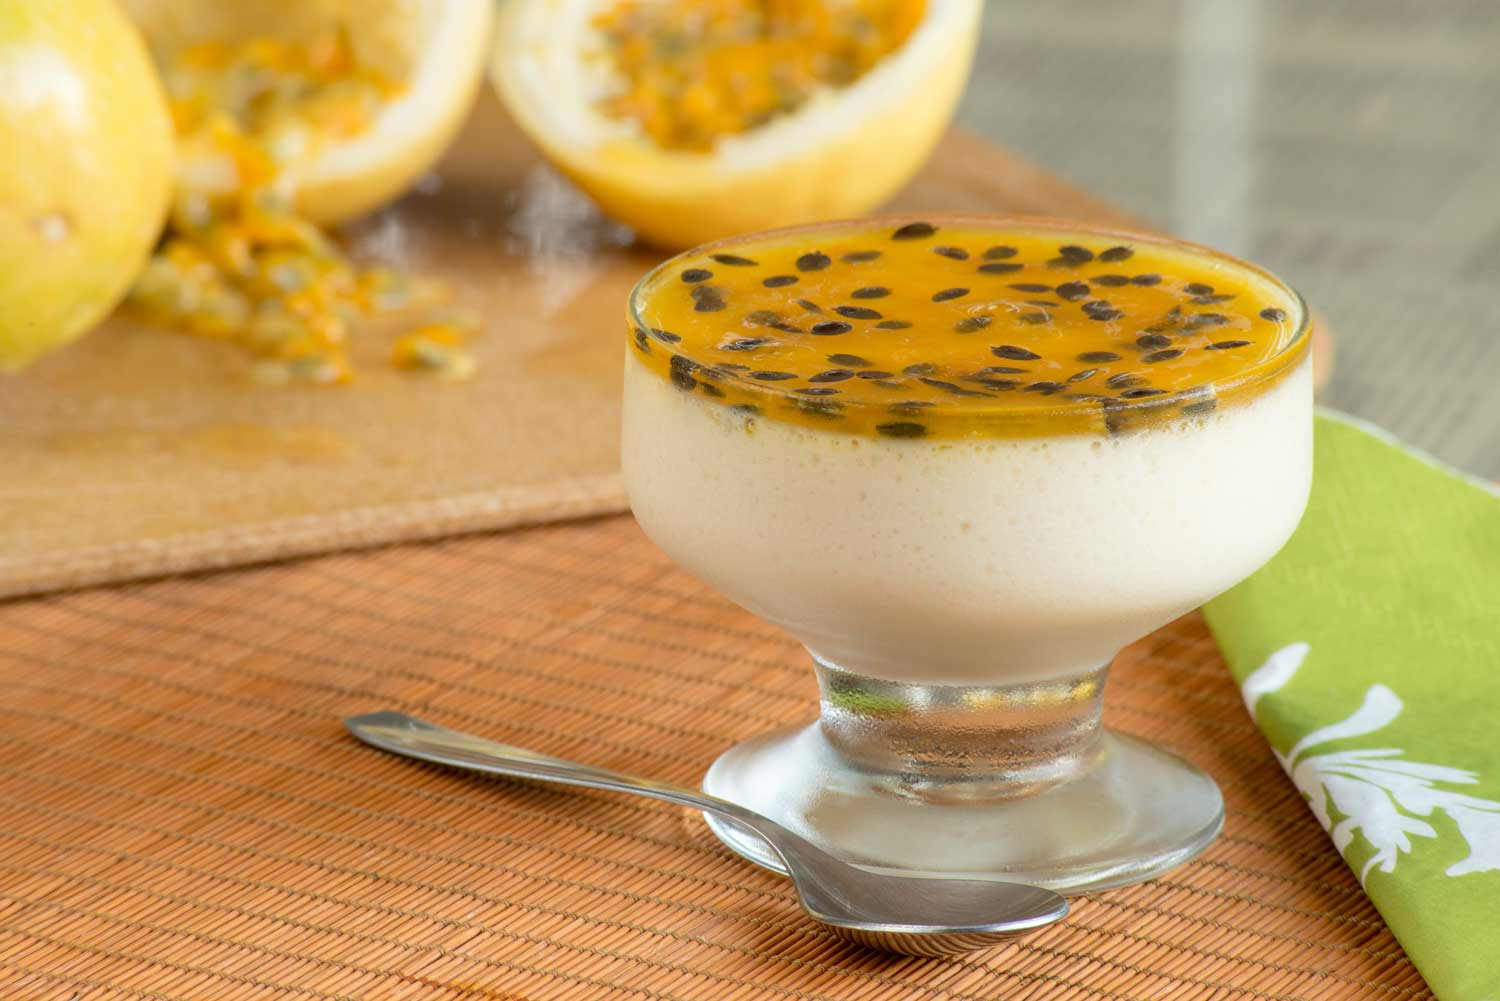 mousse de granadilla revista Maxi